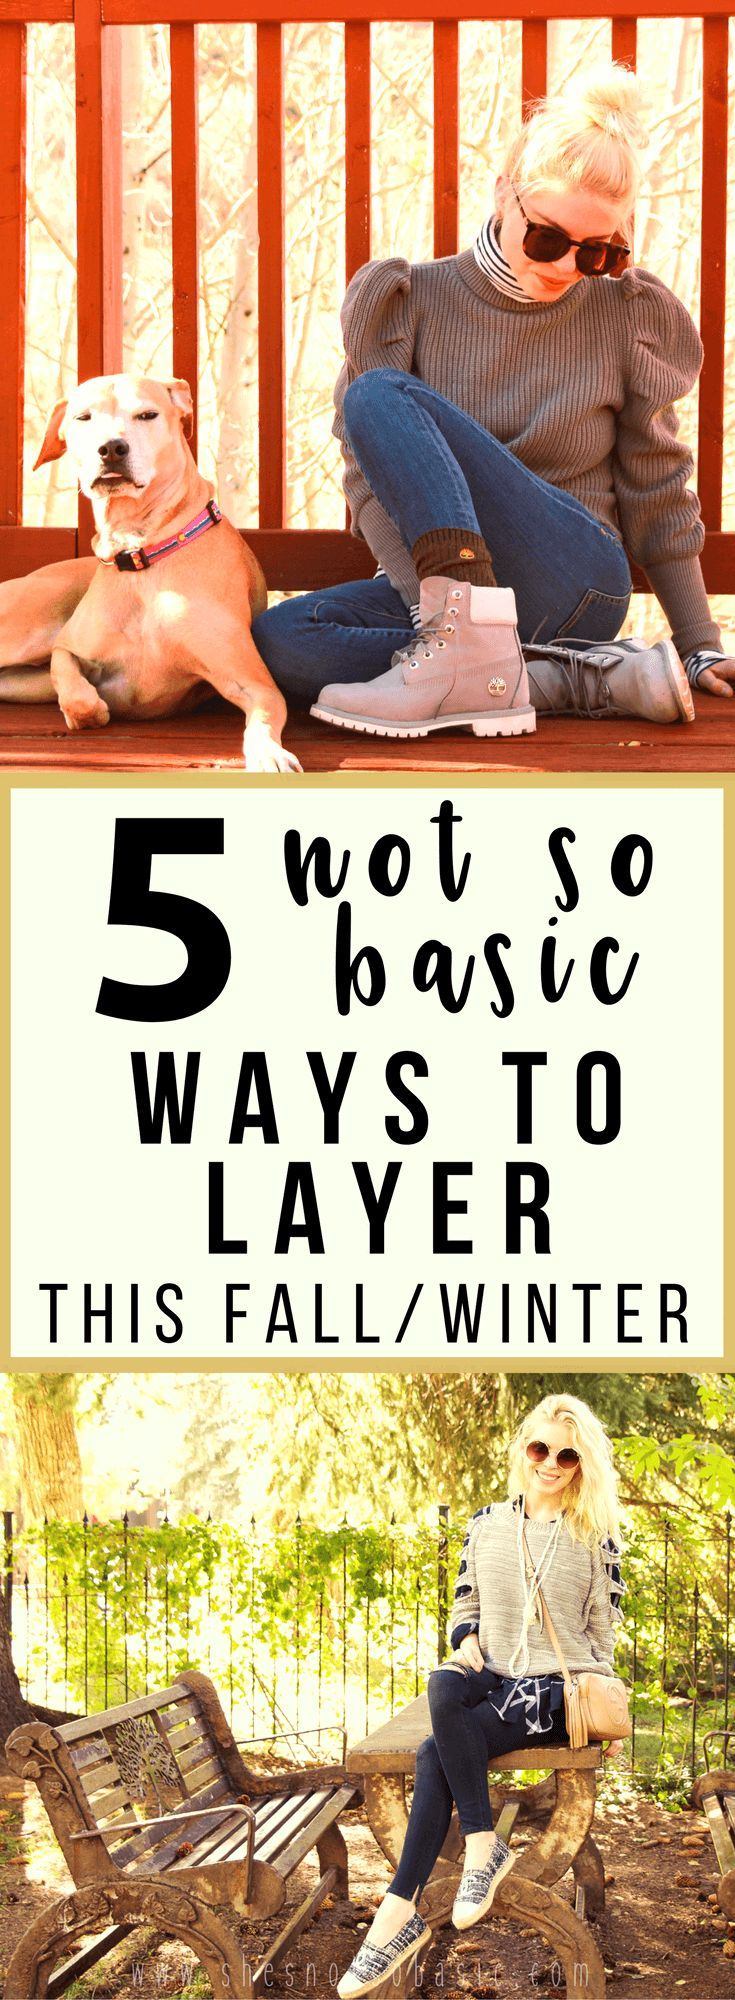 5 not so basic ways to layer, layering outfits, layering outfits fall, layering outfits winter, layering ideas, layering ideas for women, how to layer, #layering, #fallstyle, #winterstyle